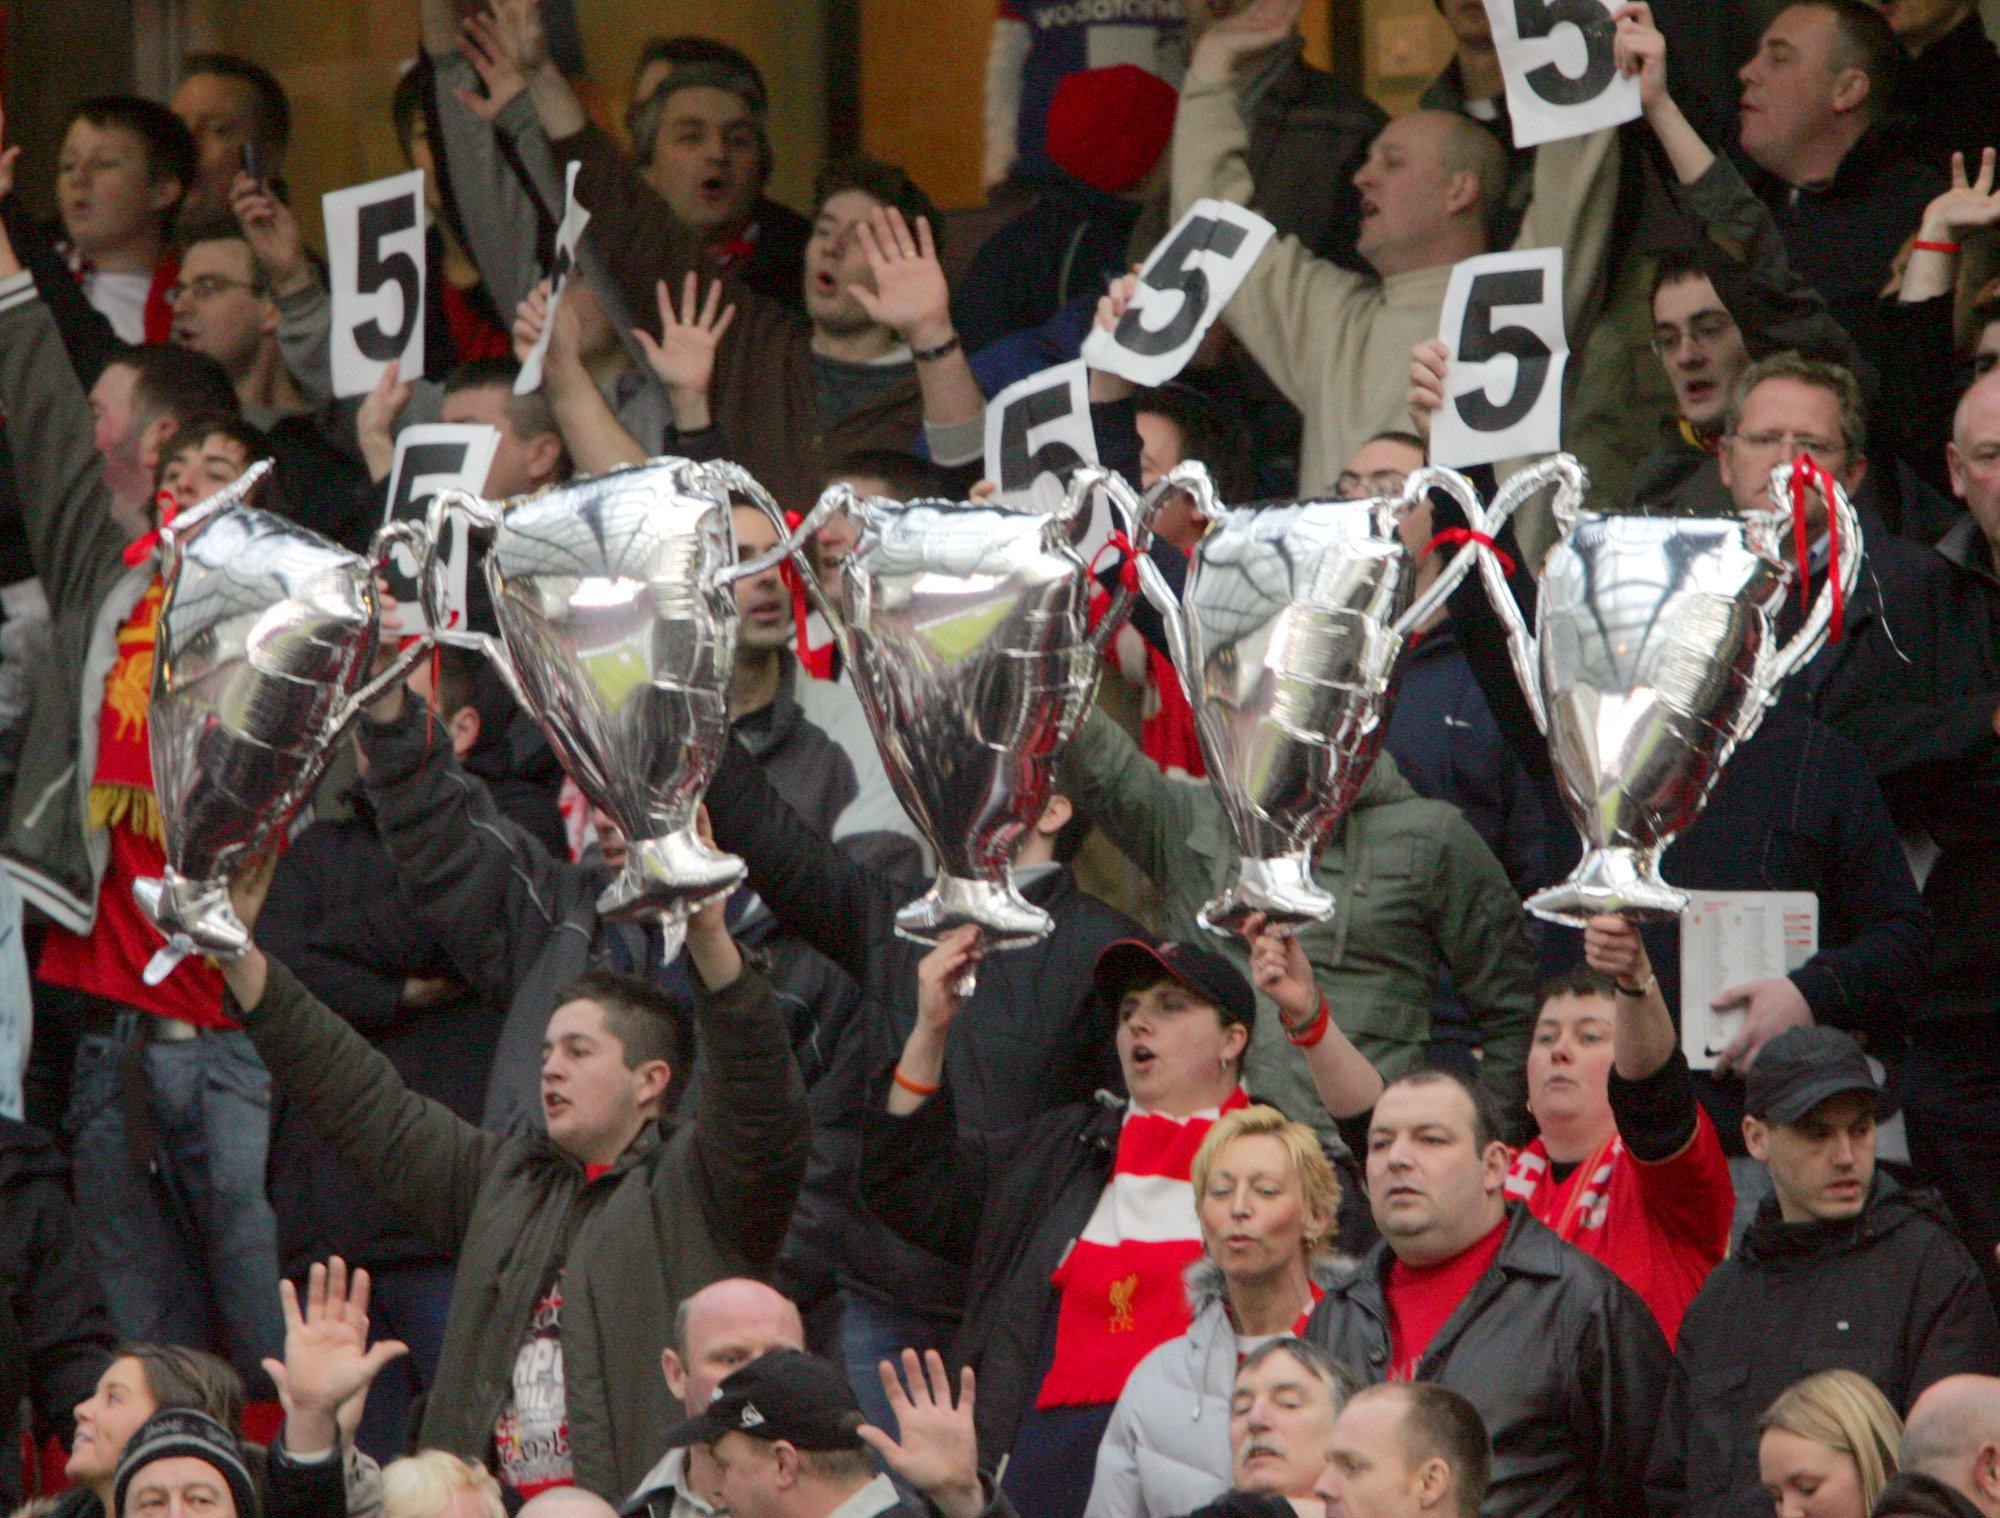 Liverpool's five European Cup/Champions League triumphs remain a source of angst at Old Trafford (Image: AFP)